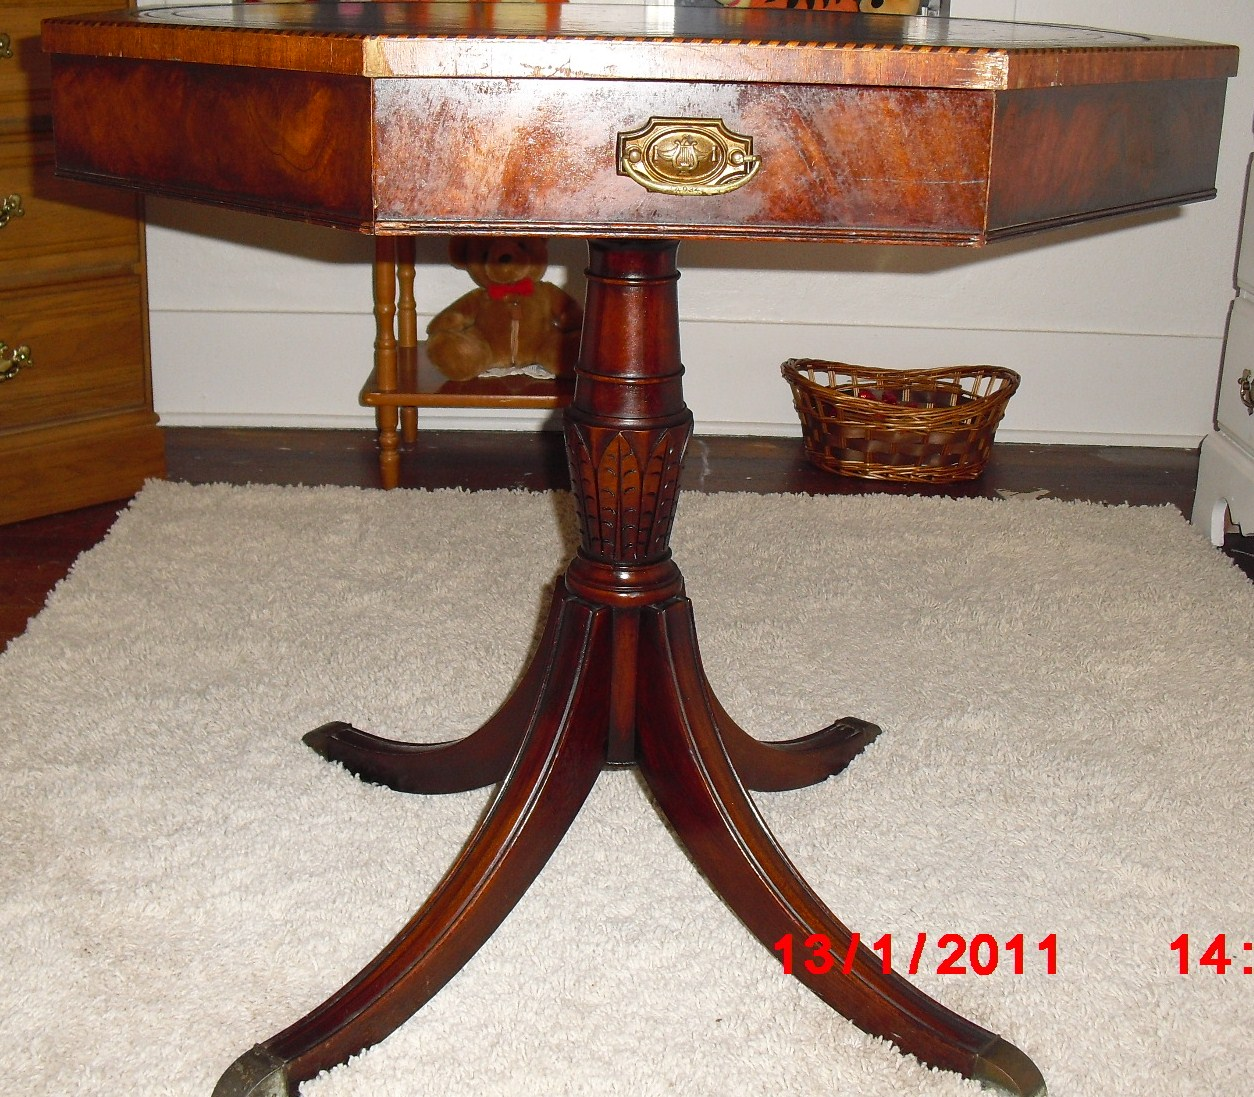 - Weiman Octogan Leather Top Table For Sale Antiques.com Classifieds